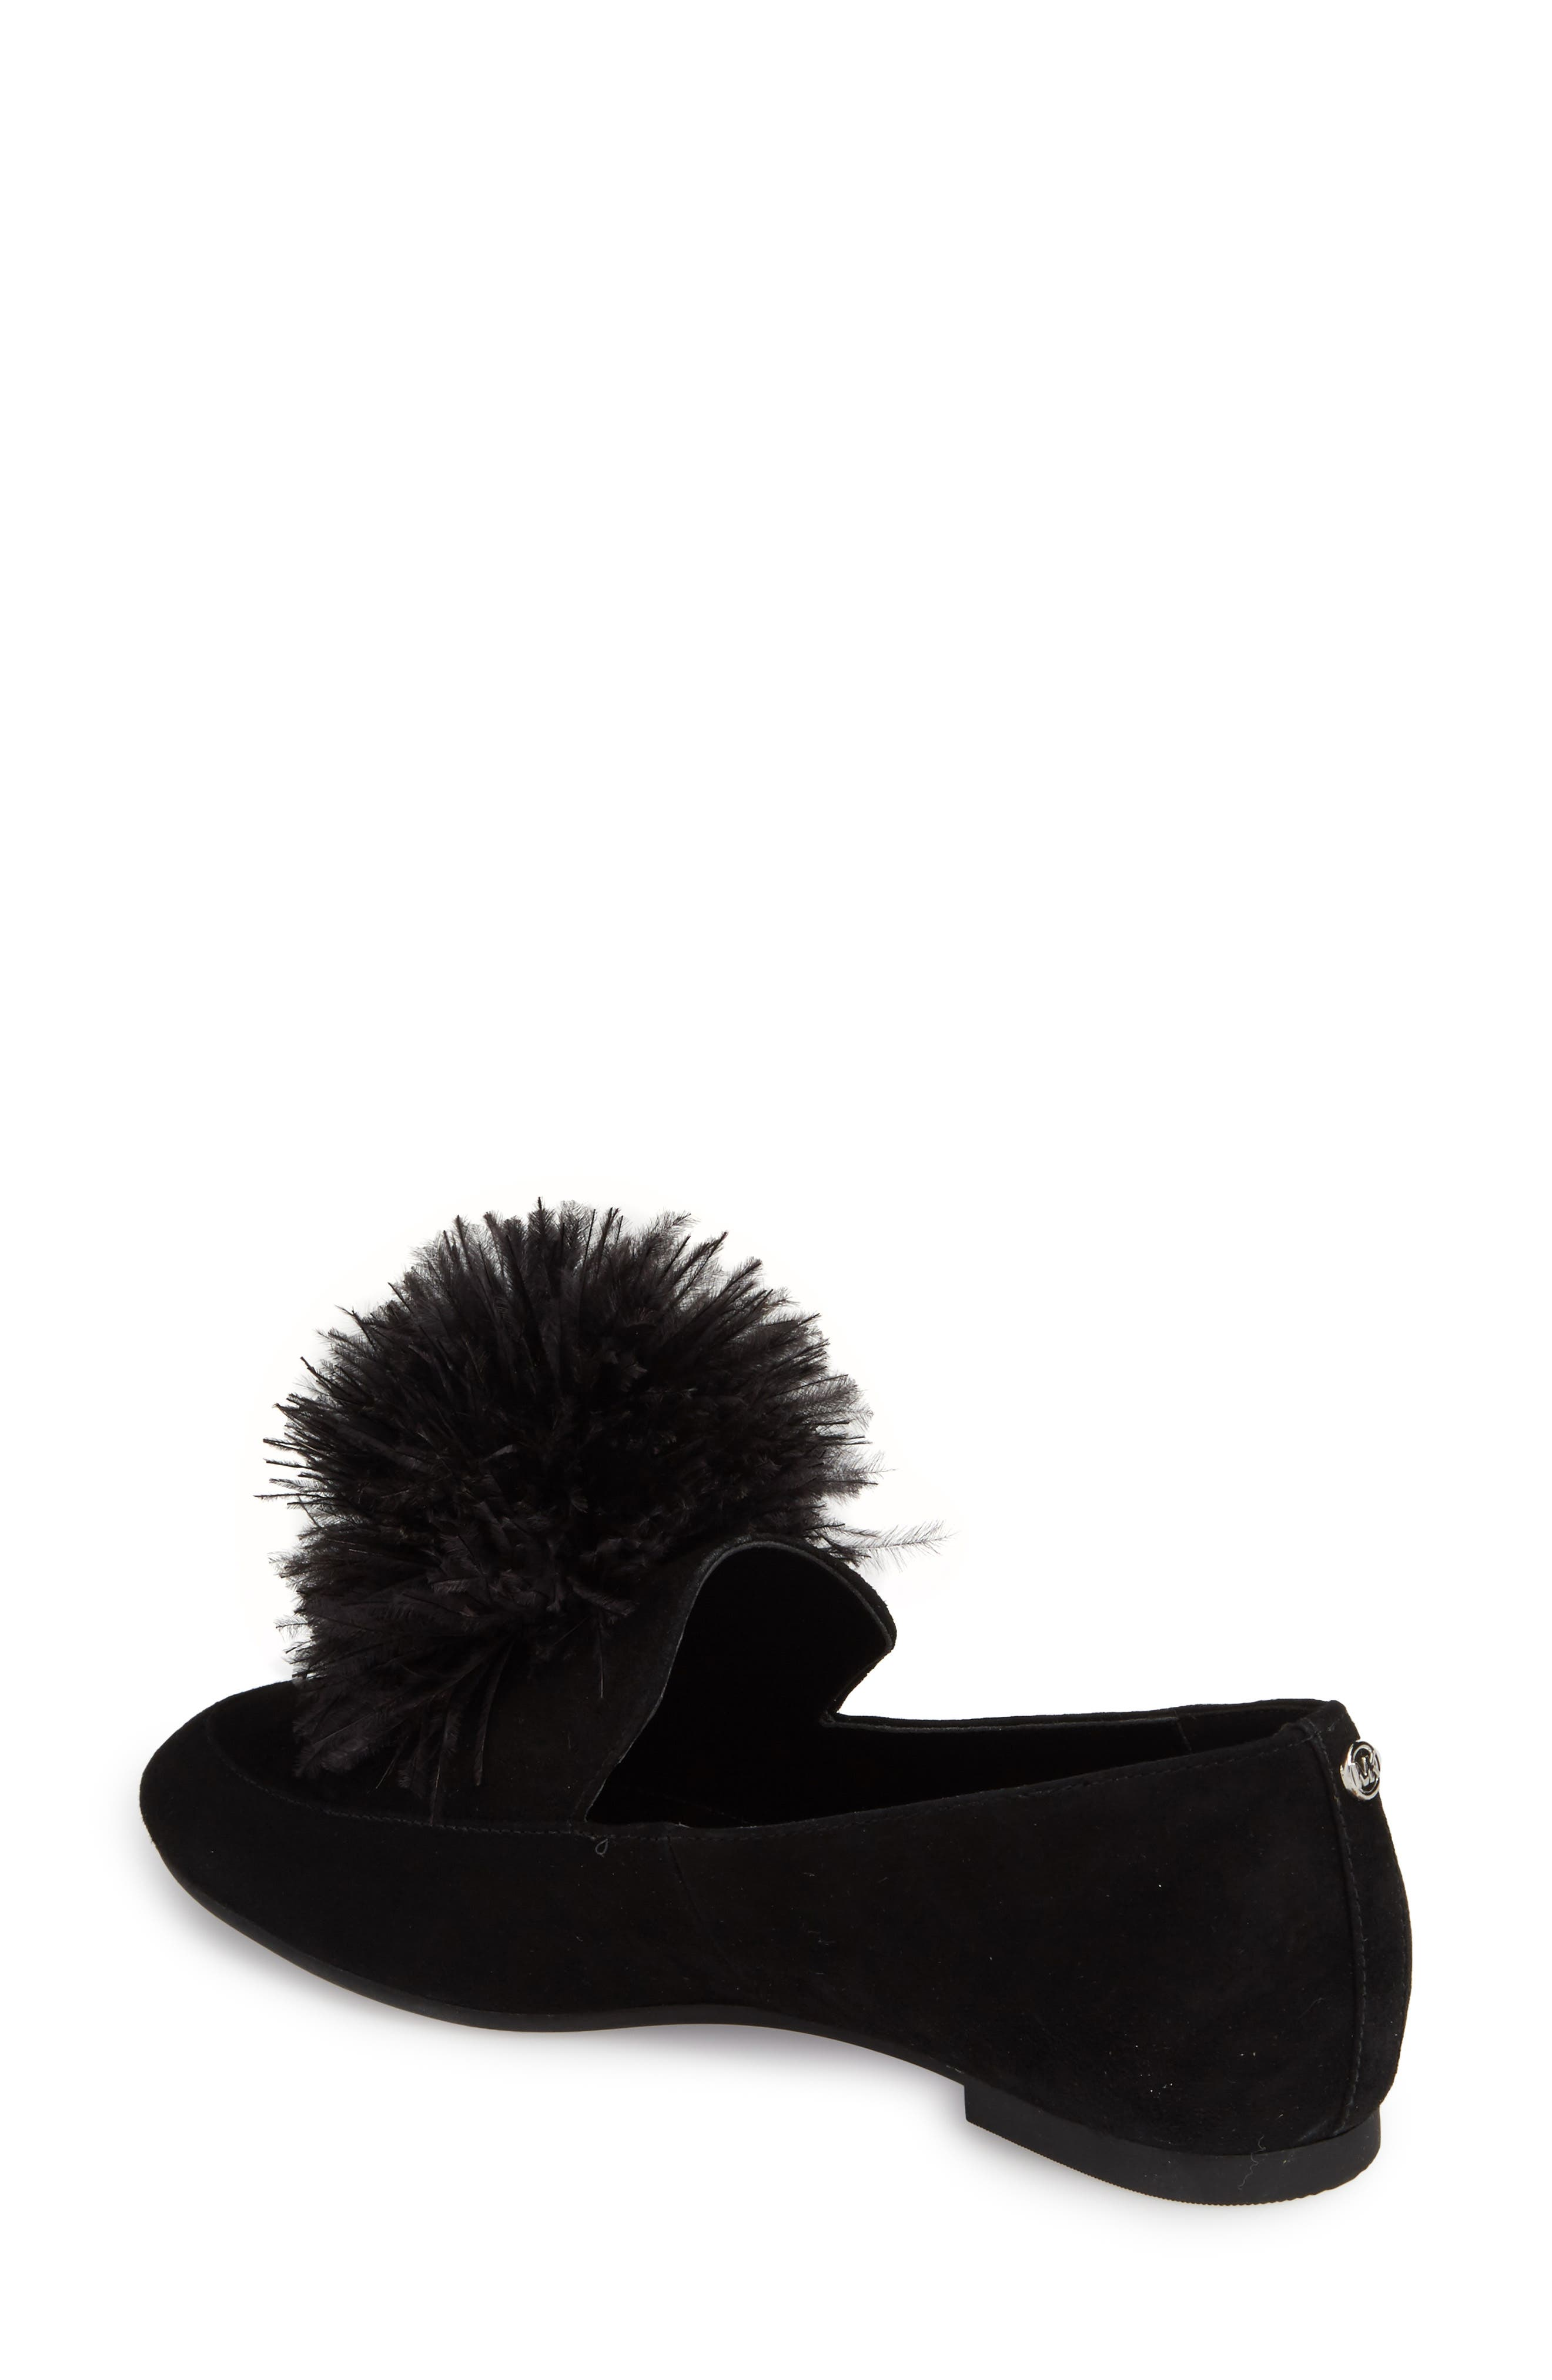 Fara Feather Pom Loafer,                             Alternate thumbnail 2, color,                             001